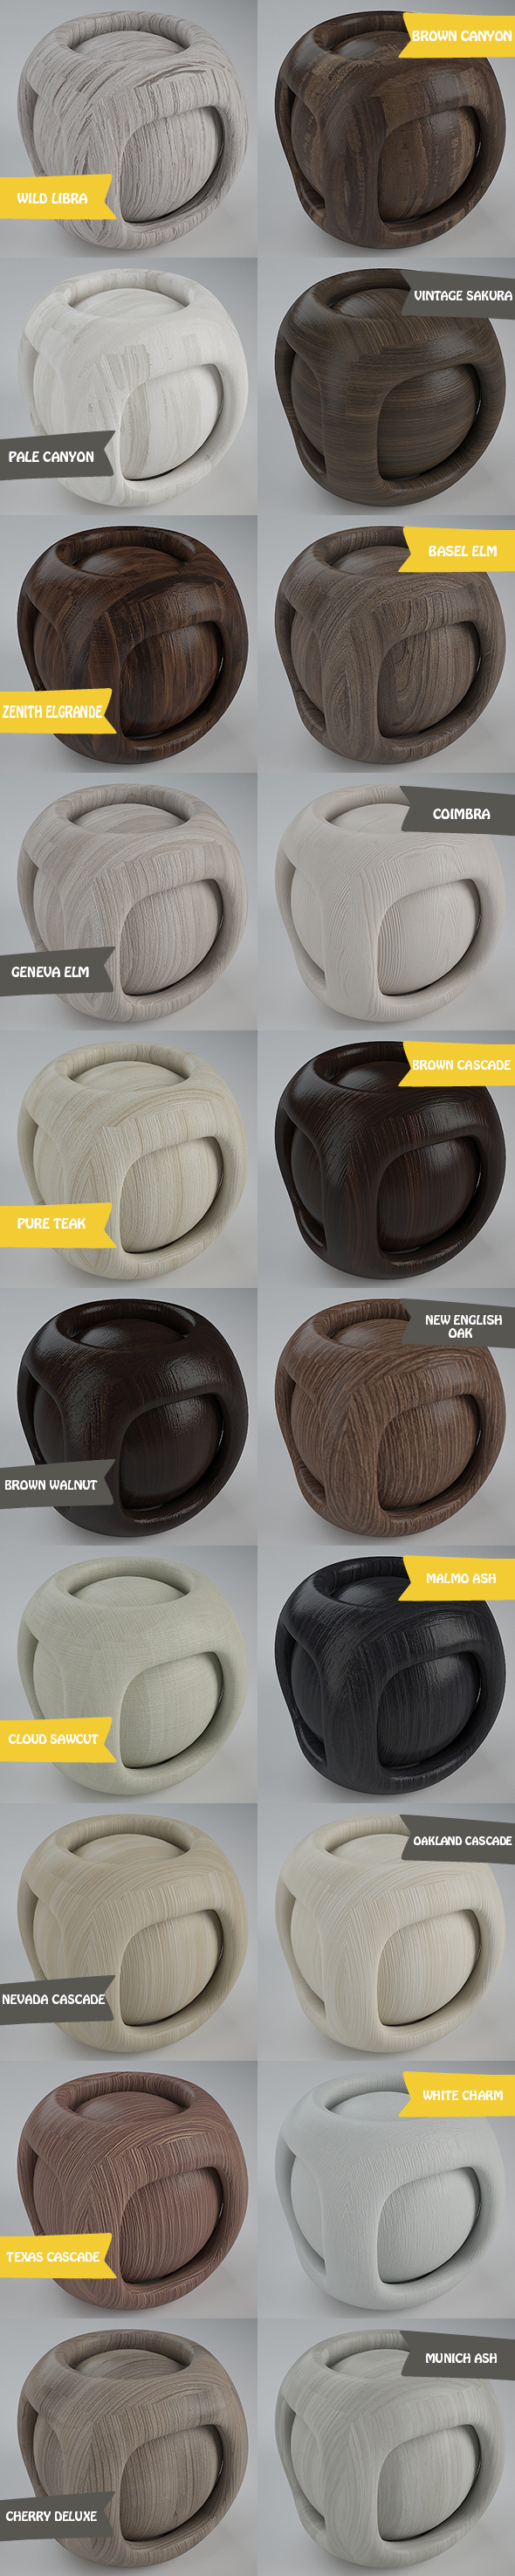 Real Plywood Pack 1 (20 Vray Material) - 3DOcean Item for Sale